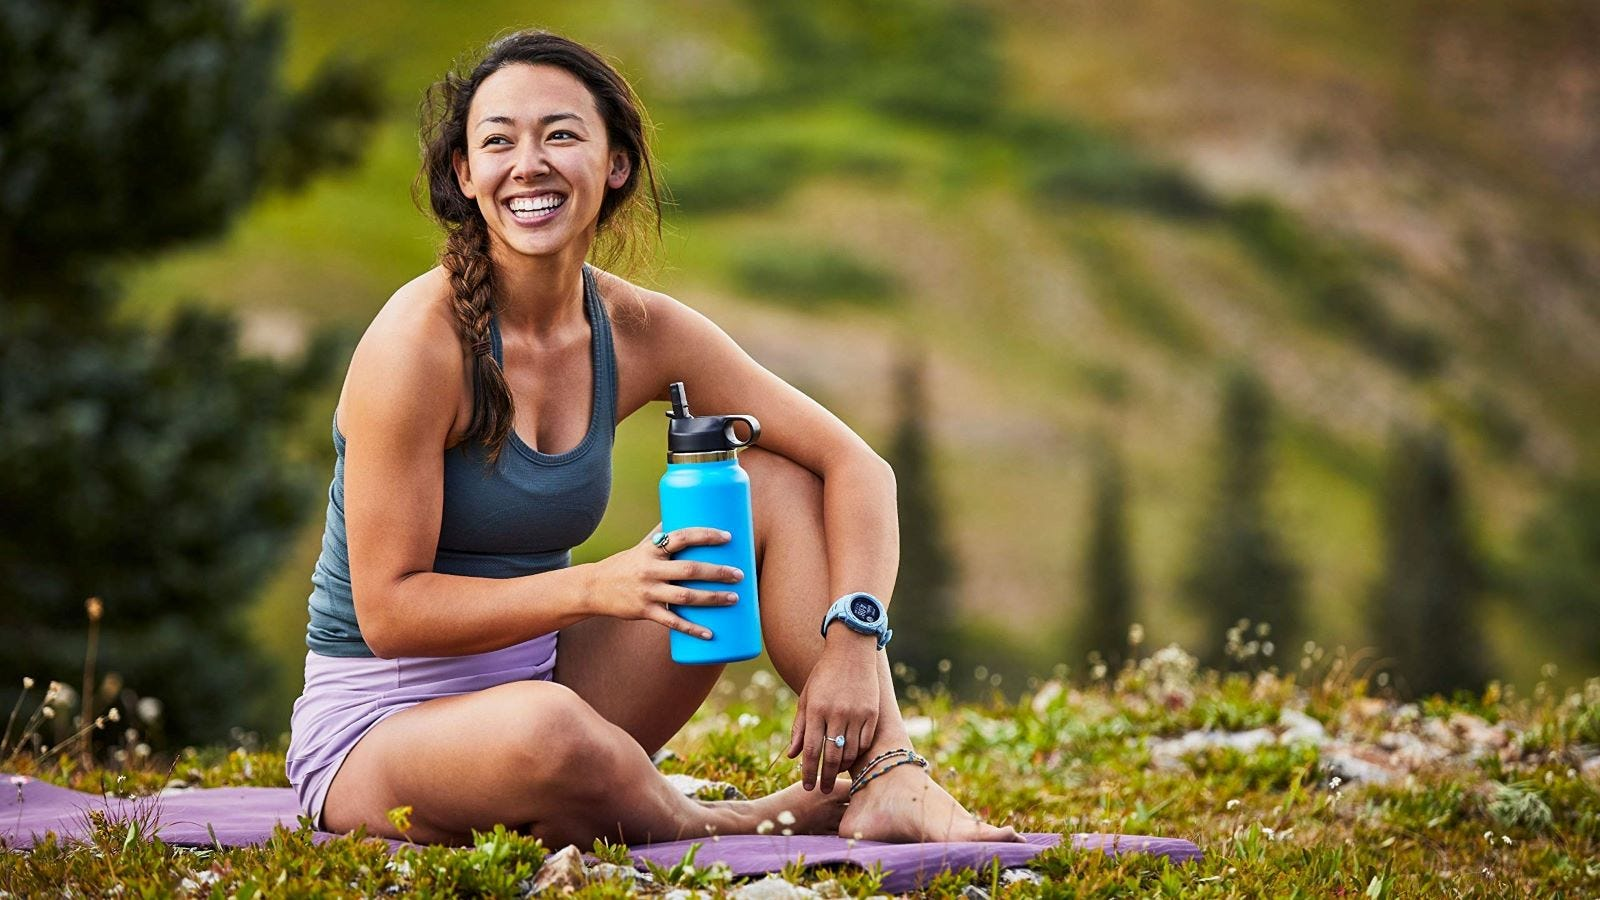 A woman sitting on a blanket at a park holding a Hydro Flask Water Bottle.